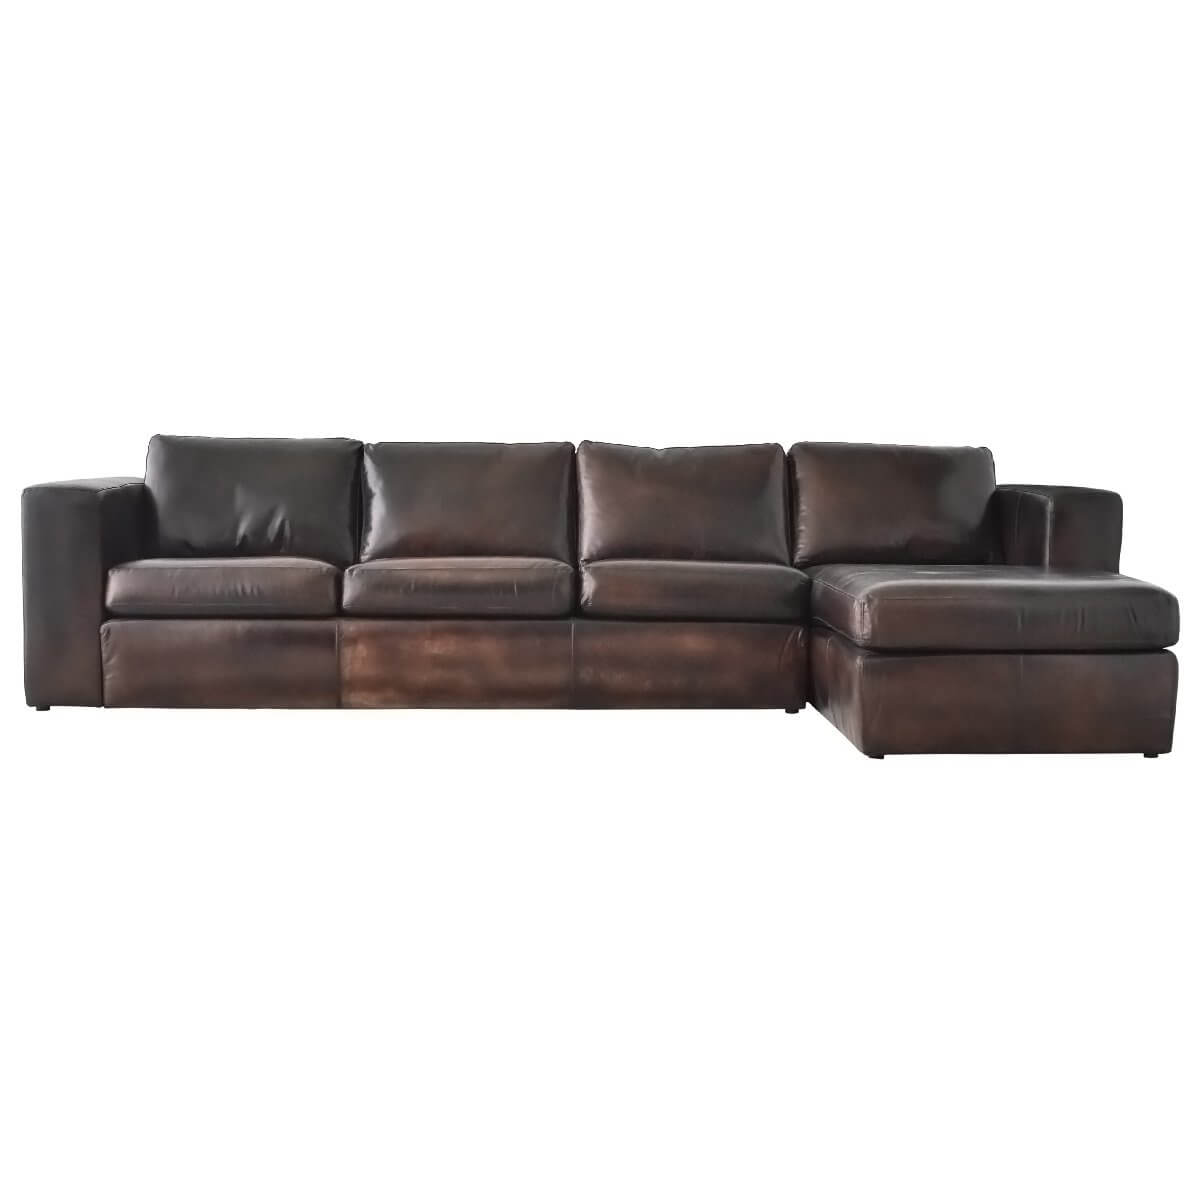 buffalo_leather_lounger_cozy_home